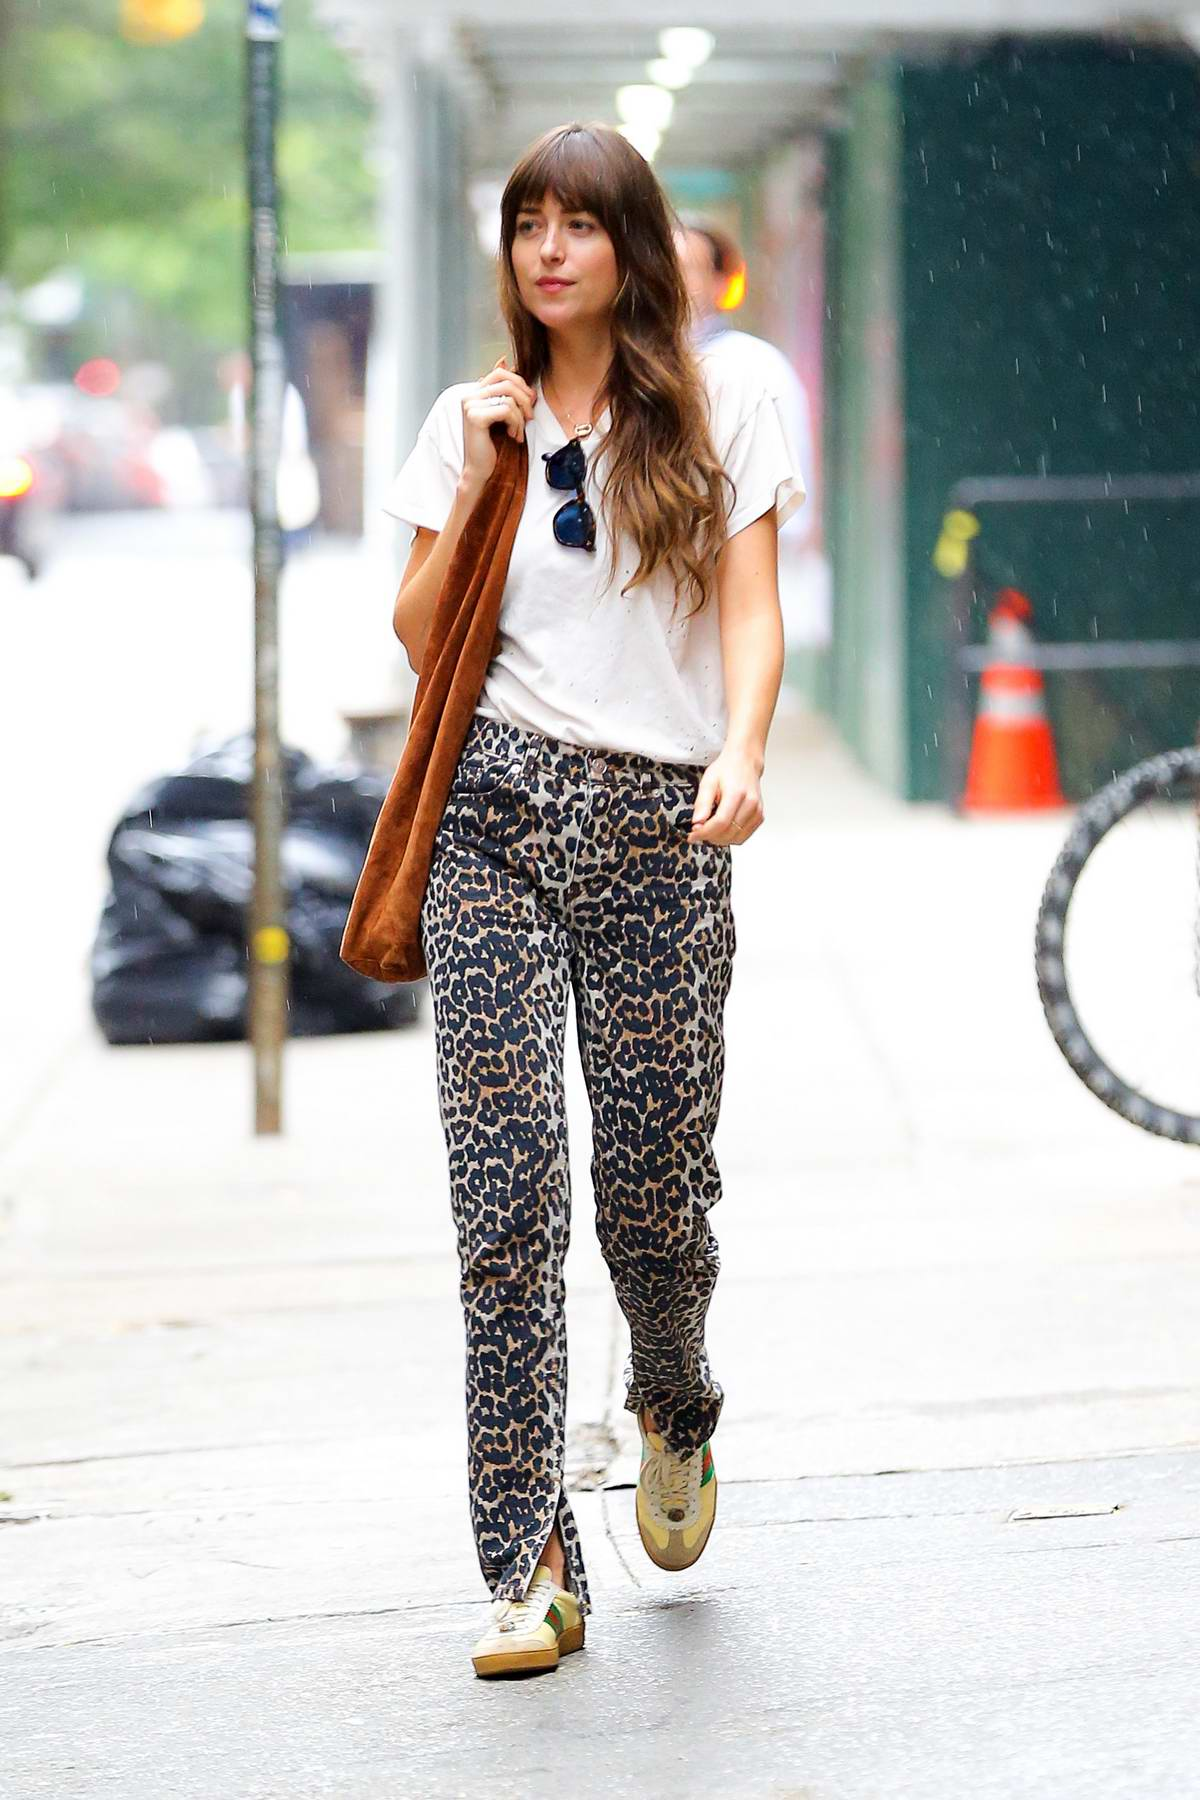 Dakota Johnson steps out on a rainy day donning a white tee and animal print pants in New York City